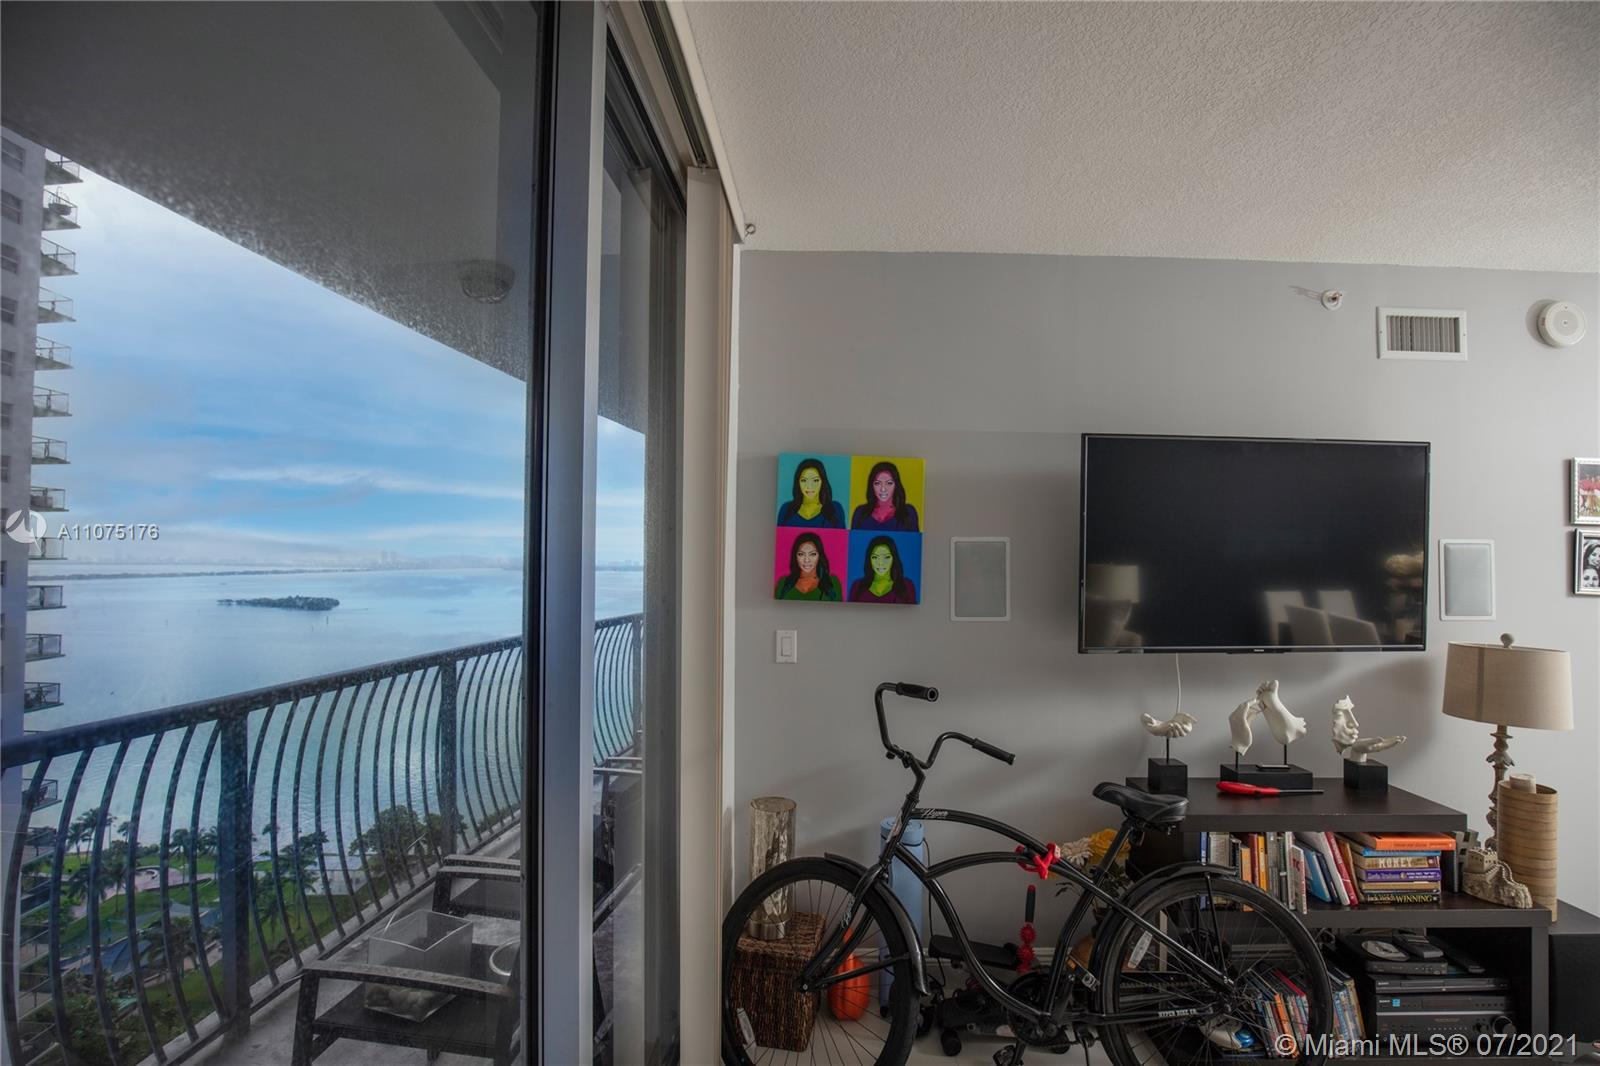 Amazing bay and city views from this unit with a large balcony and great layout.  The kitchen is ope